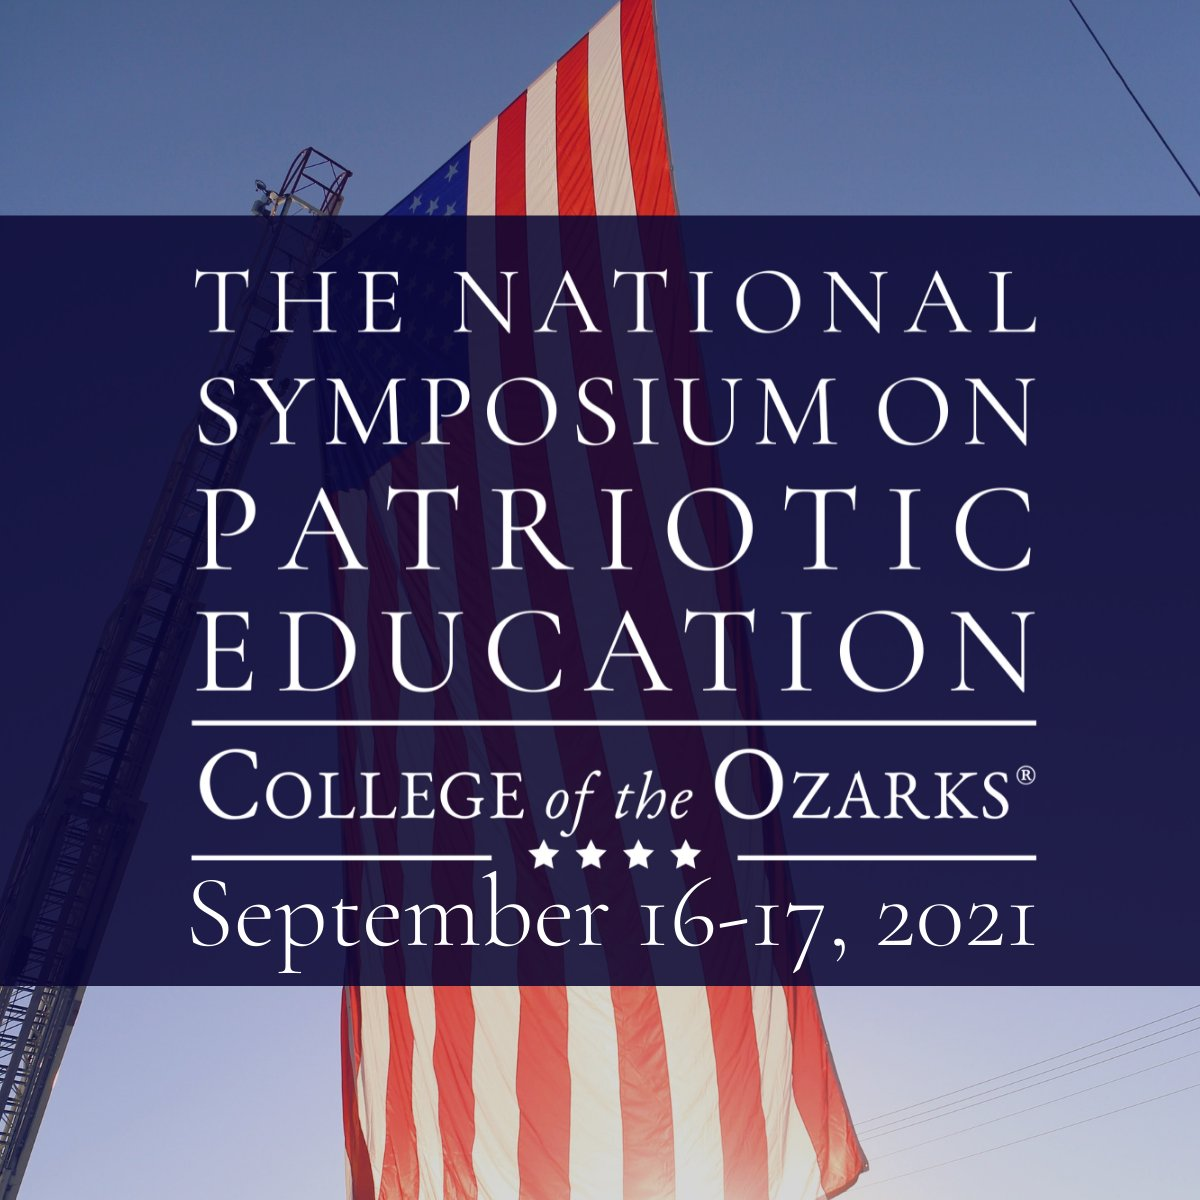 Happy Constitution Day, America! 🇺🇸  @KarenPence and I are looking forward to joining the National Symposium on Patriotic Education at @CofOHardWorkU Today!